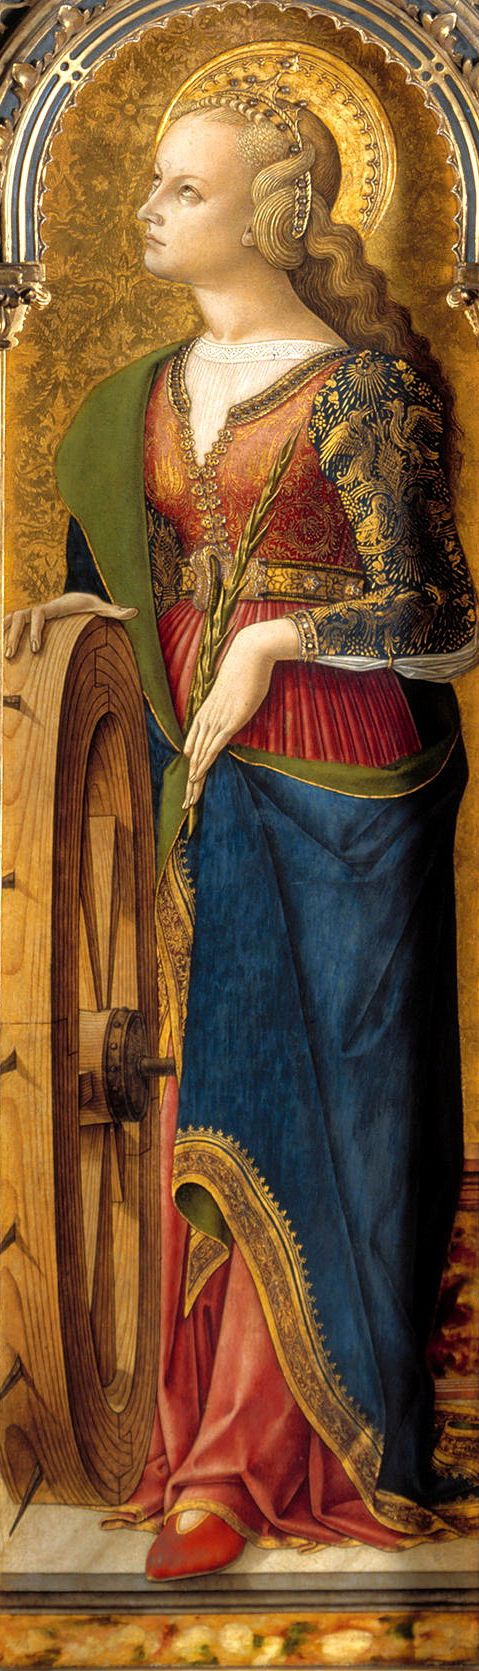 Carlo Crivelli, 1476; St Catherine of Alexandria with her symbolic attribute, a wheel.